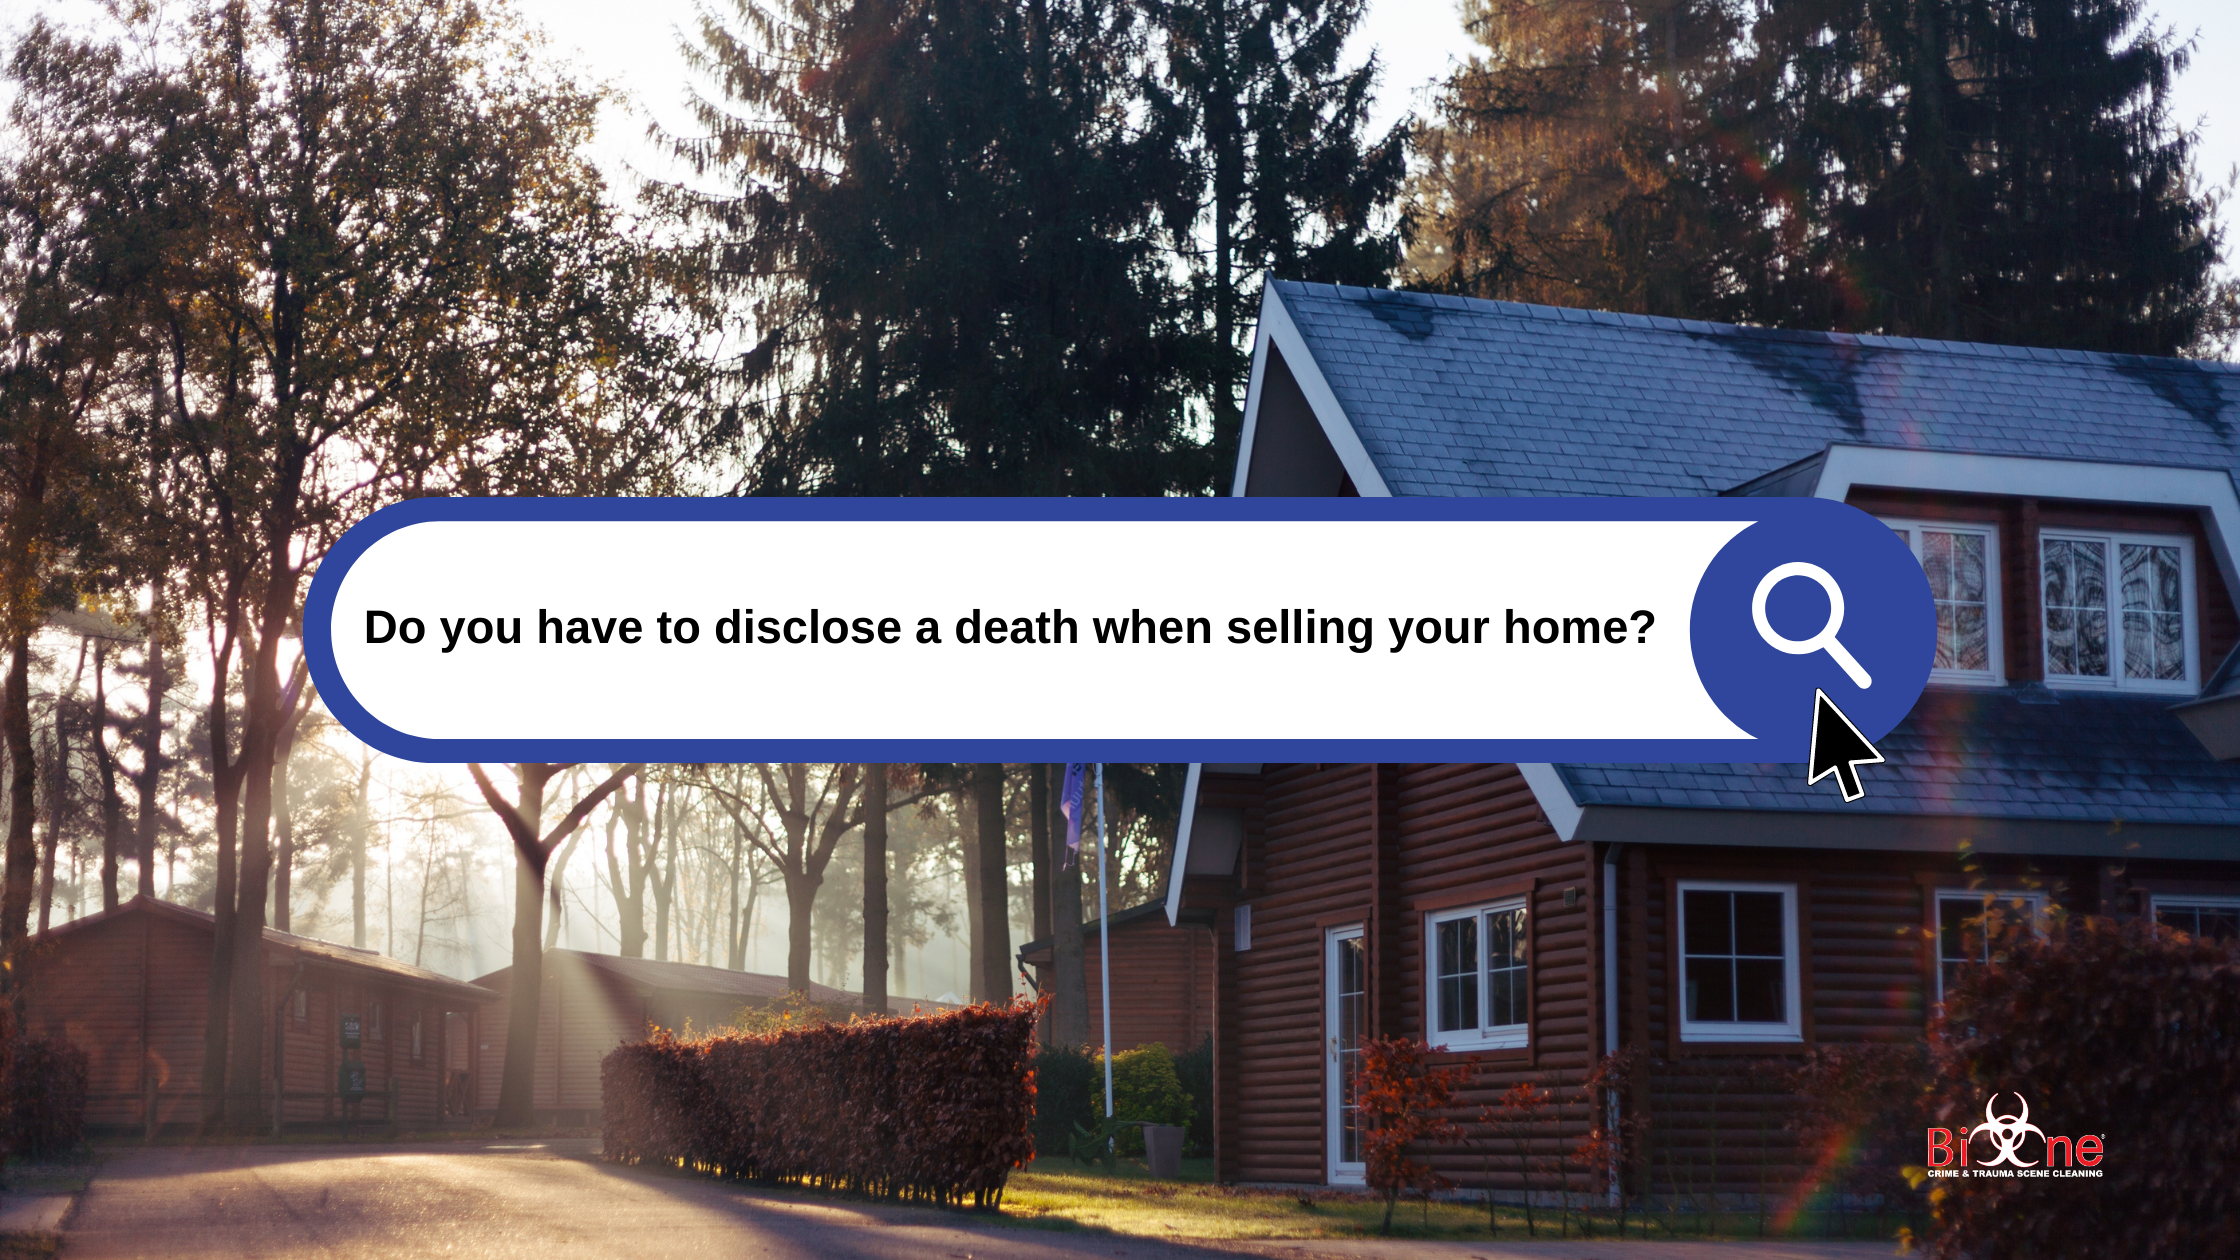 In Ohio Do you Have to Disclose a Death When Selling Your Home?